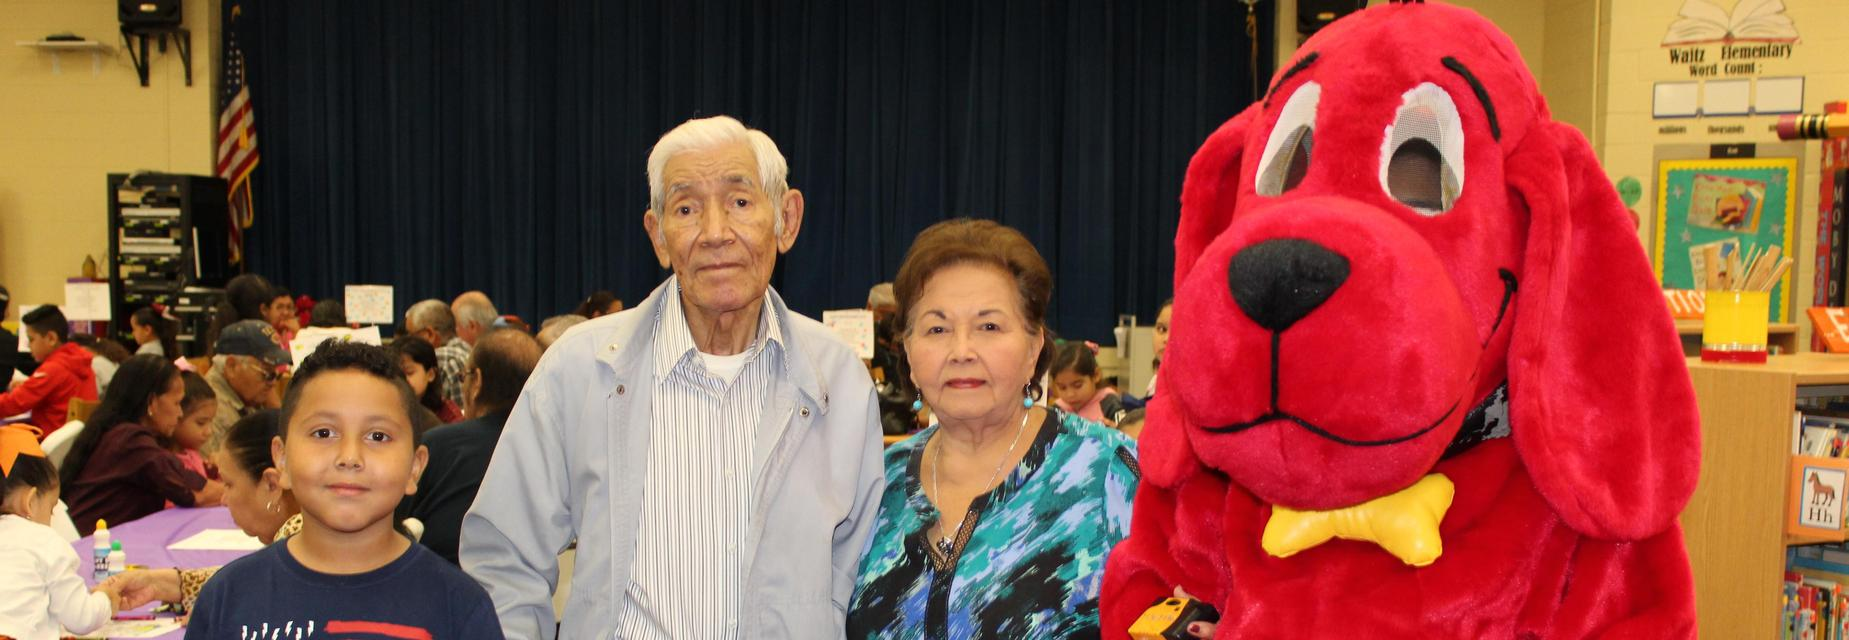 Grandparents day picture including Clifford